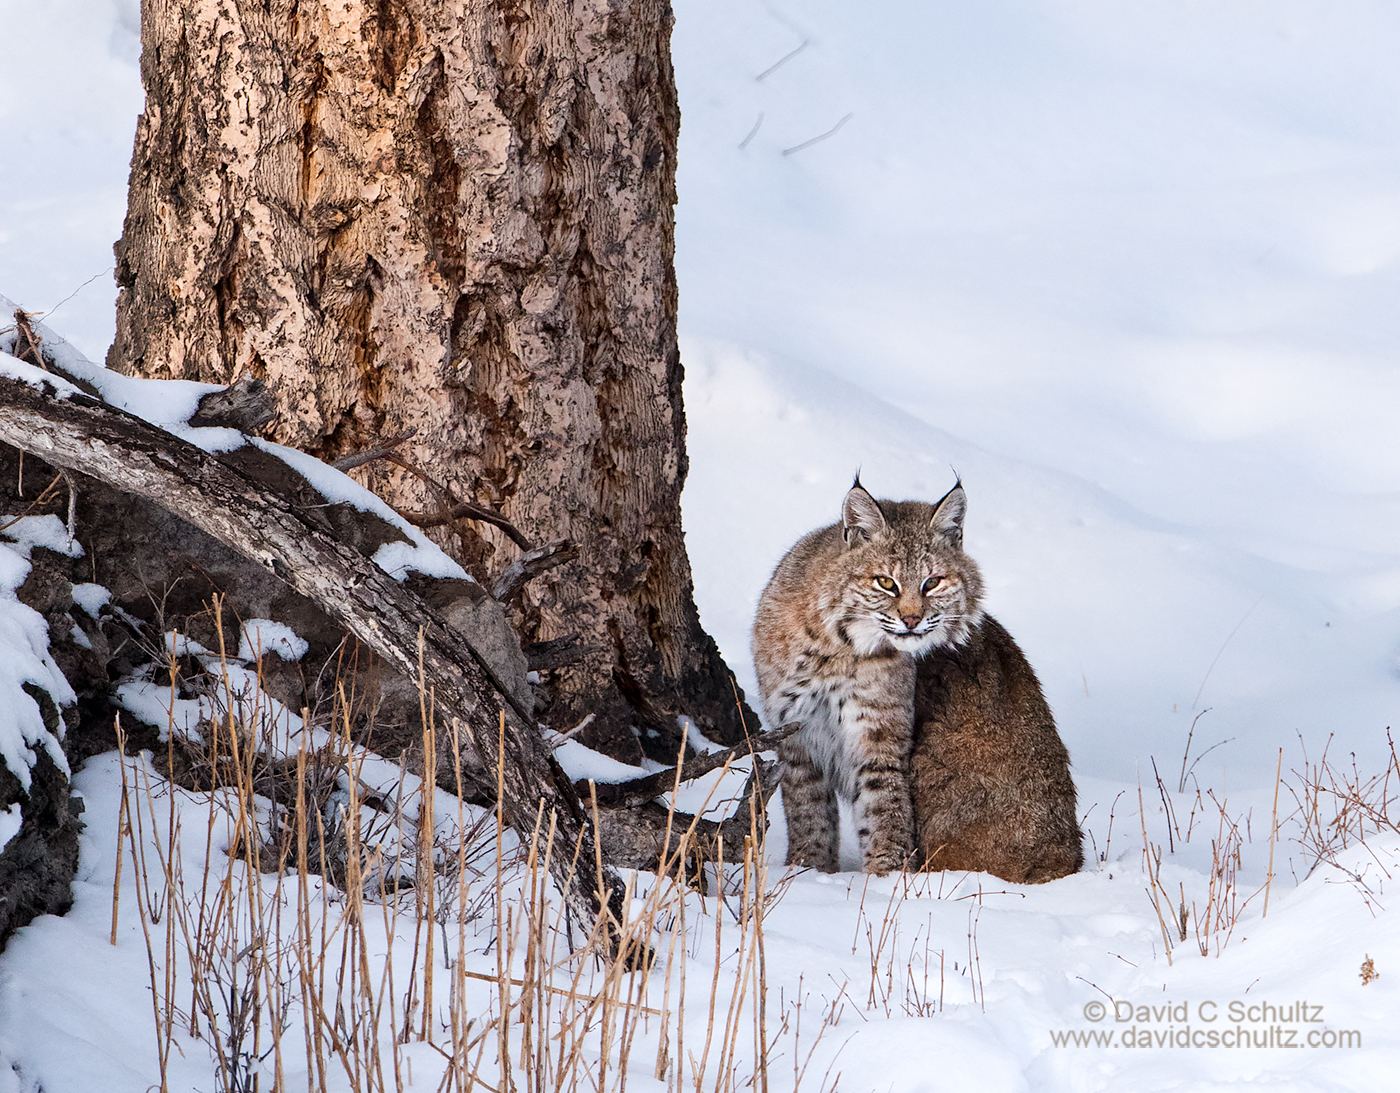 Bobcat during the winter, Yellowstone - Image #161-3797